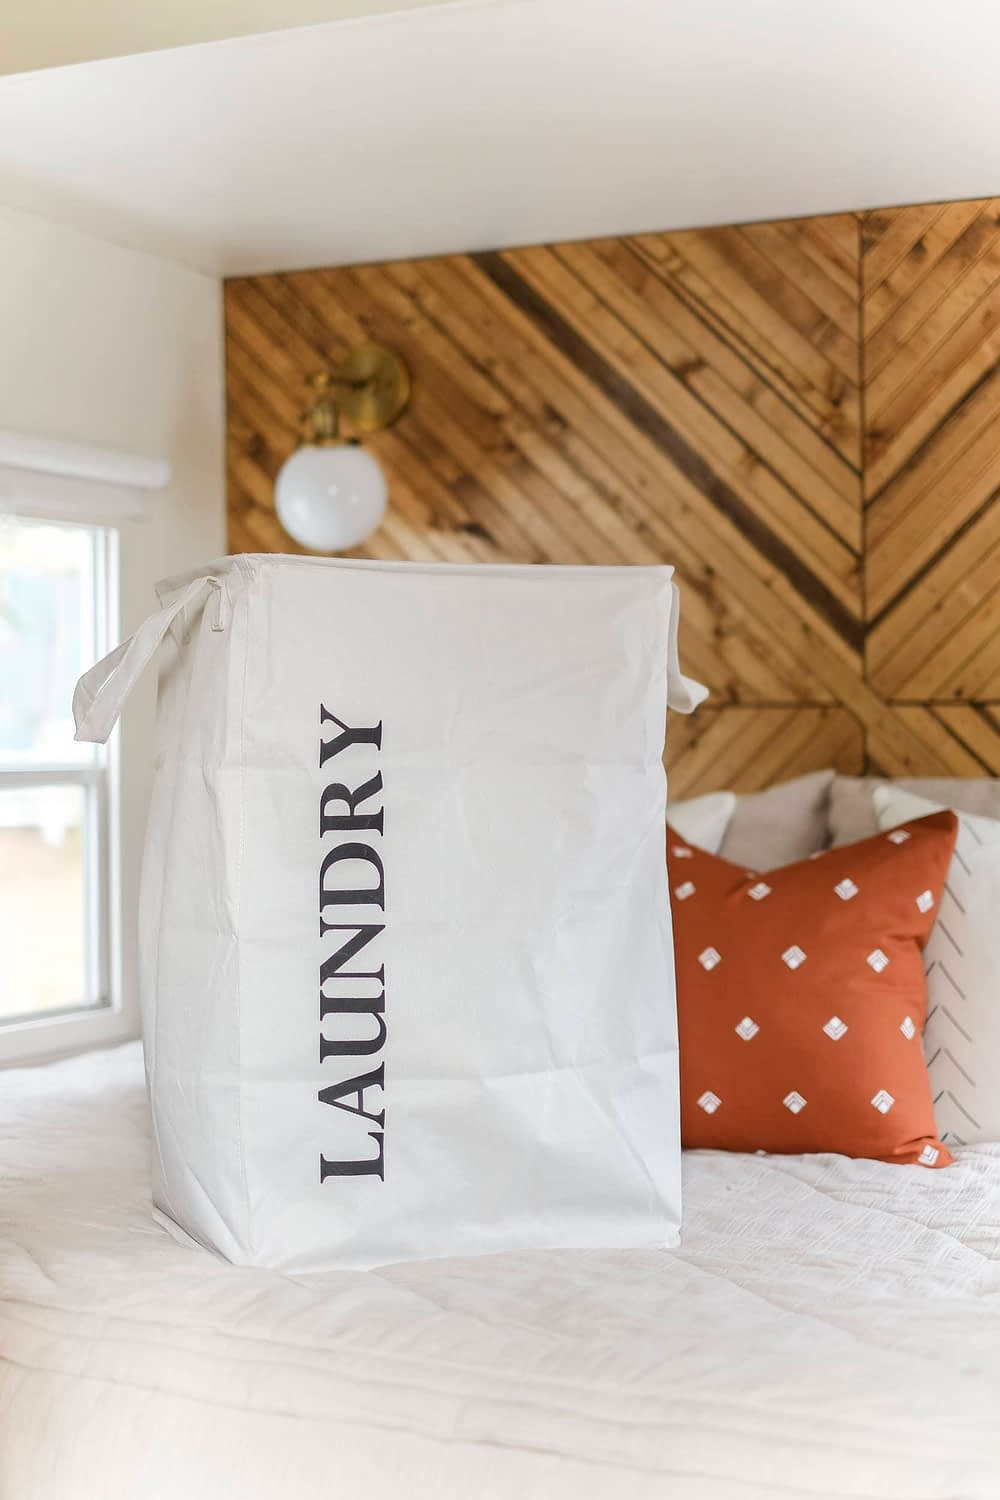 Laundty tote sitting on top of bed in an RV